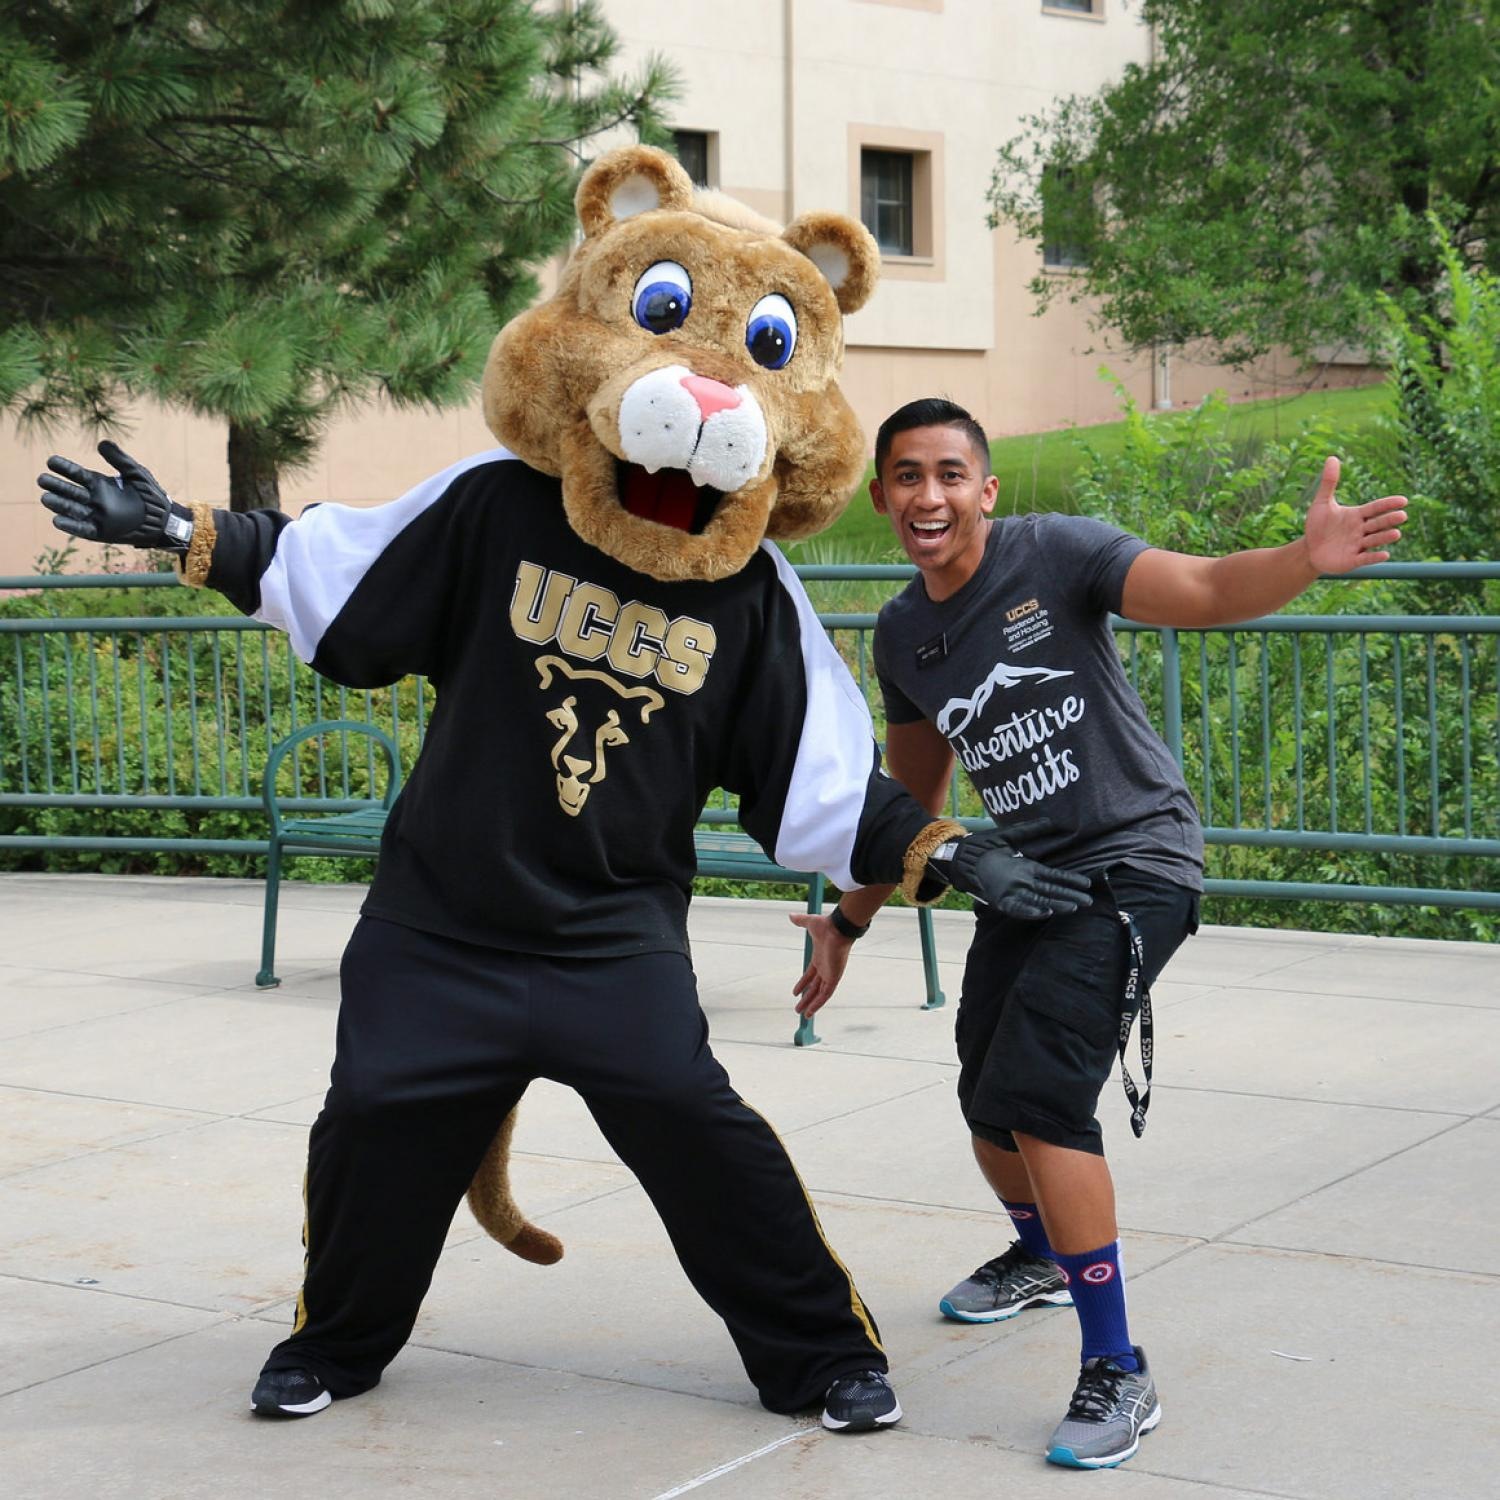 A great time was had by all during UCCS' Welcome Week